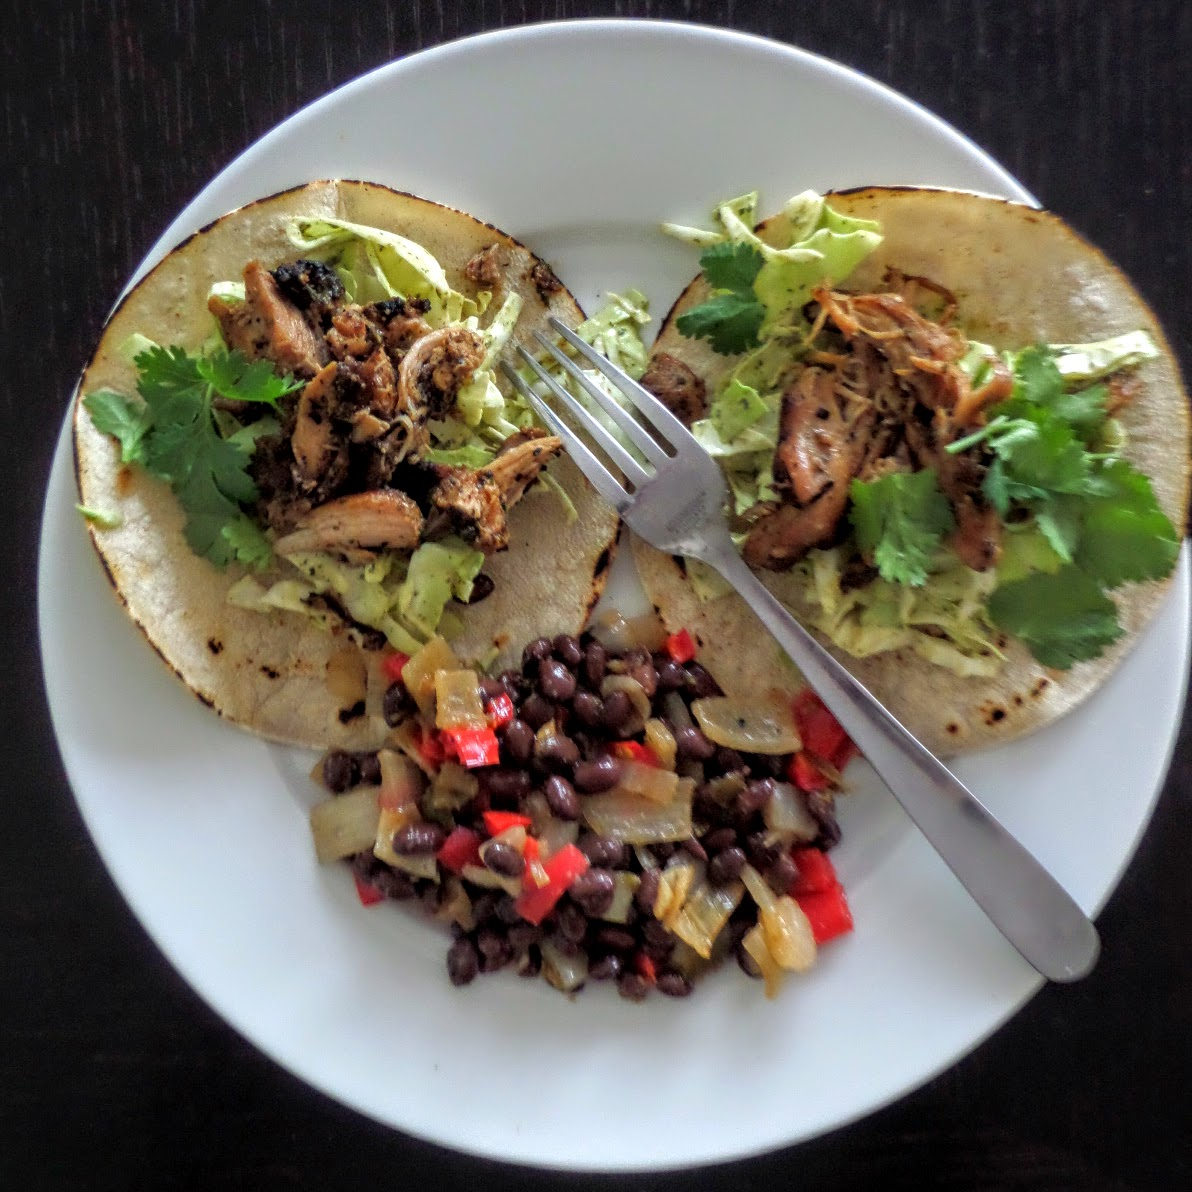 Simple chicken tacos and black beans joybee what 39 s for for Side dishes for fish tacos